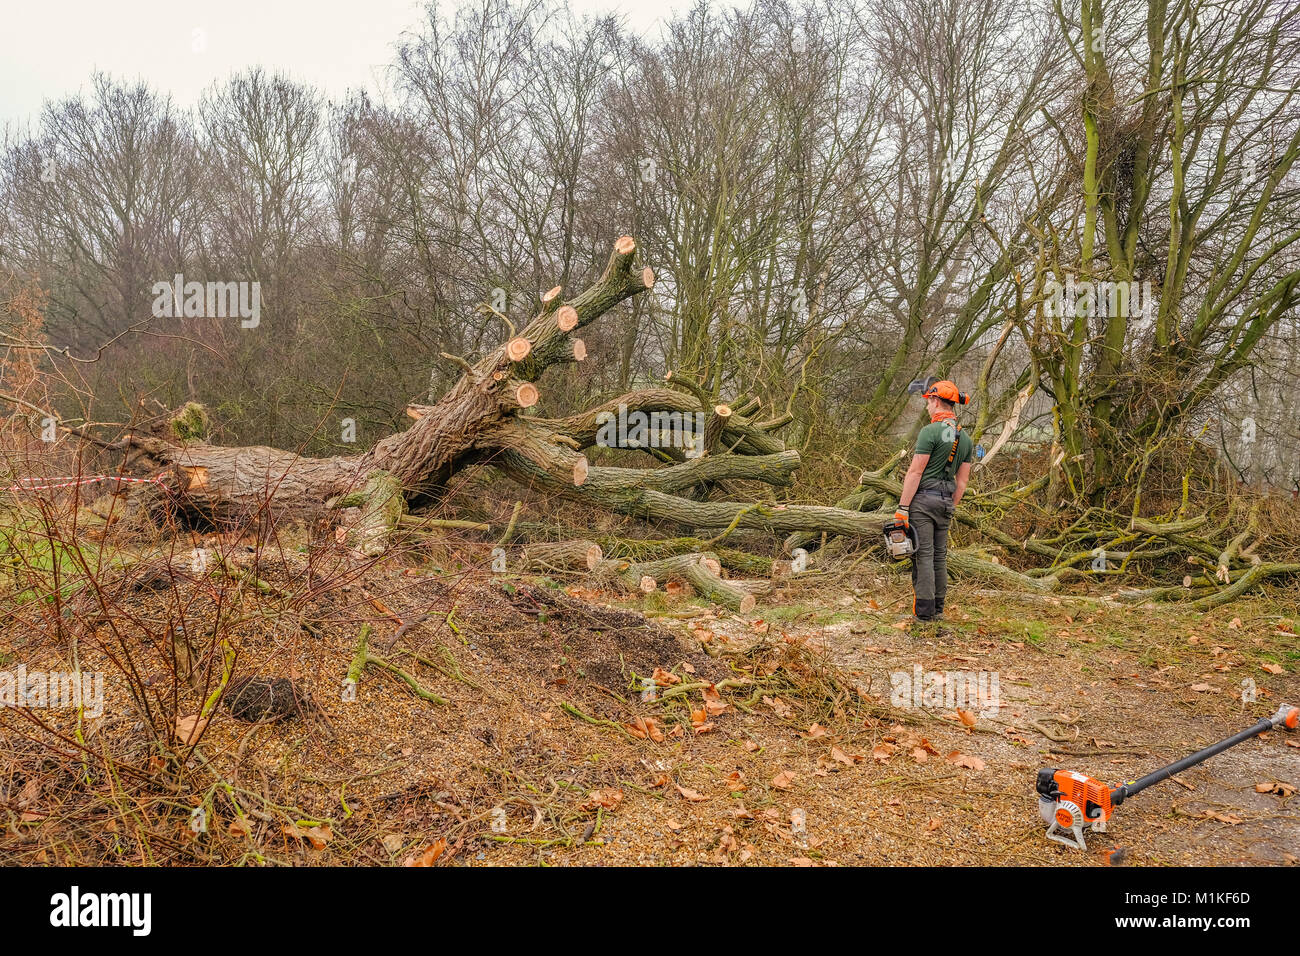 Hainault Forest, Essex, England, UK  - January 9, 2018:  cutting up and disposing of a large fallen tree.   The Stock Photo